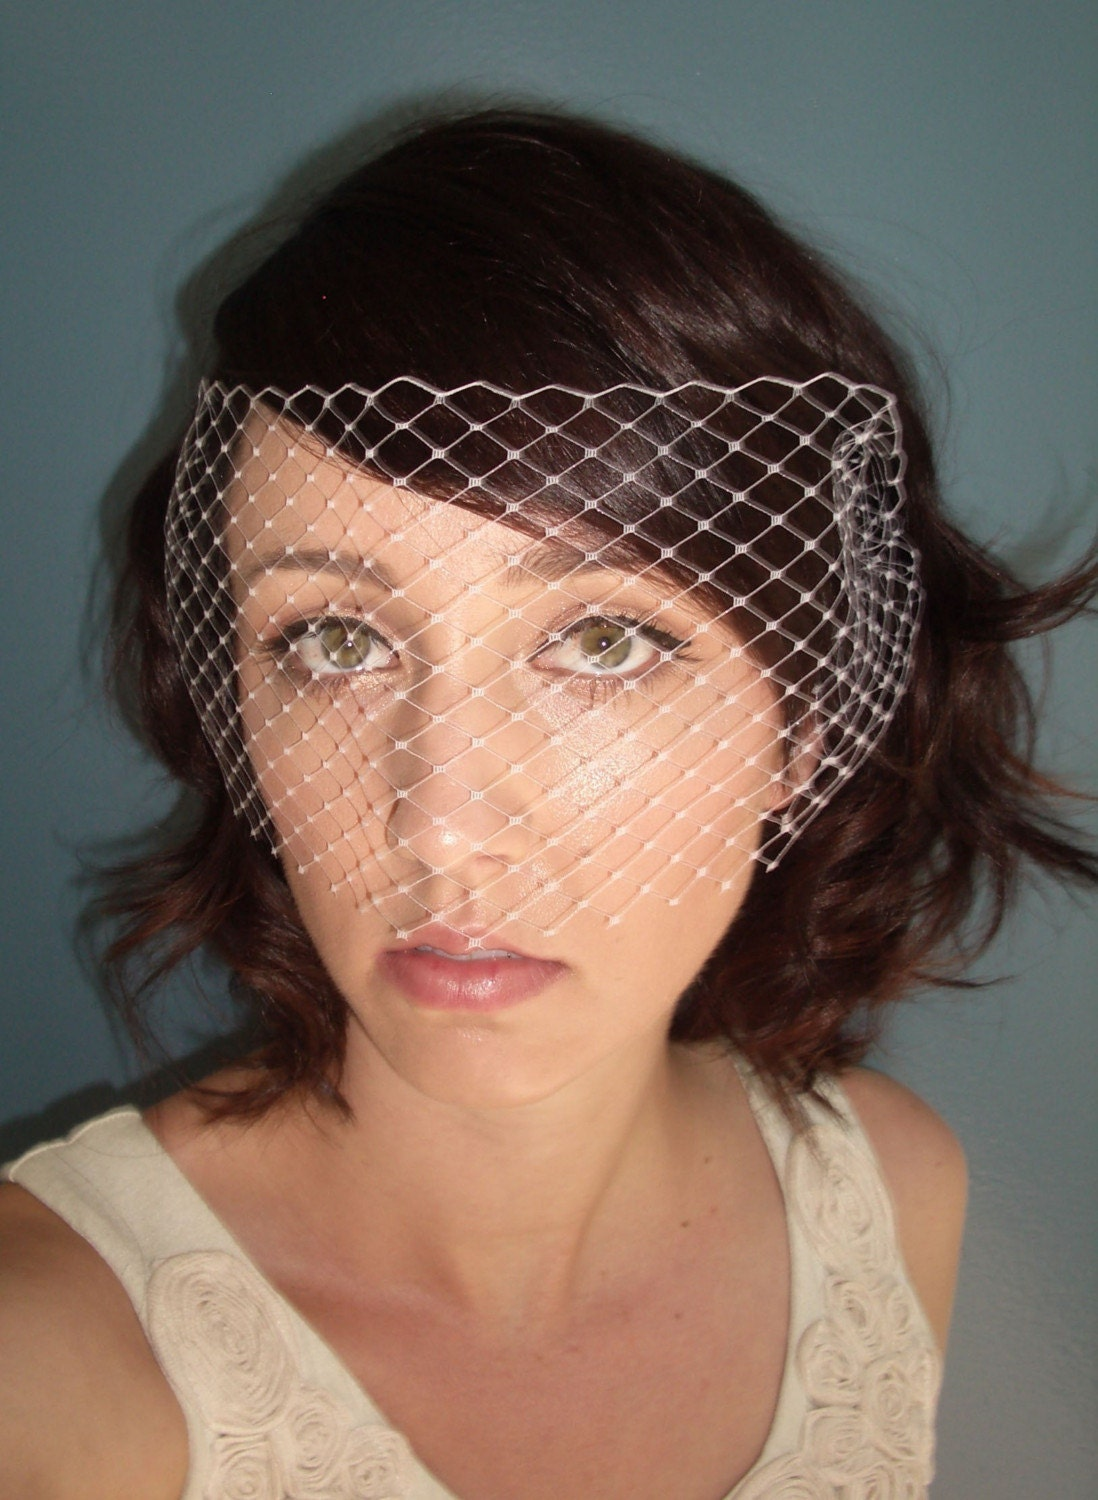 Birdcage Veil Venetian-Bridal or Special Occasion by TessaKim on Etsy from etsy.com